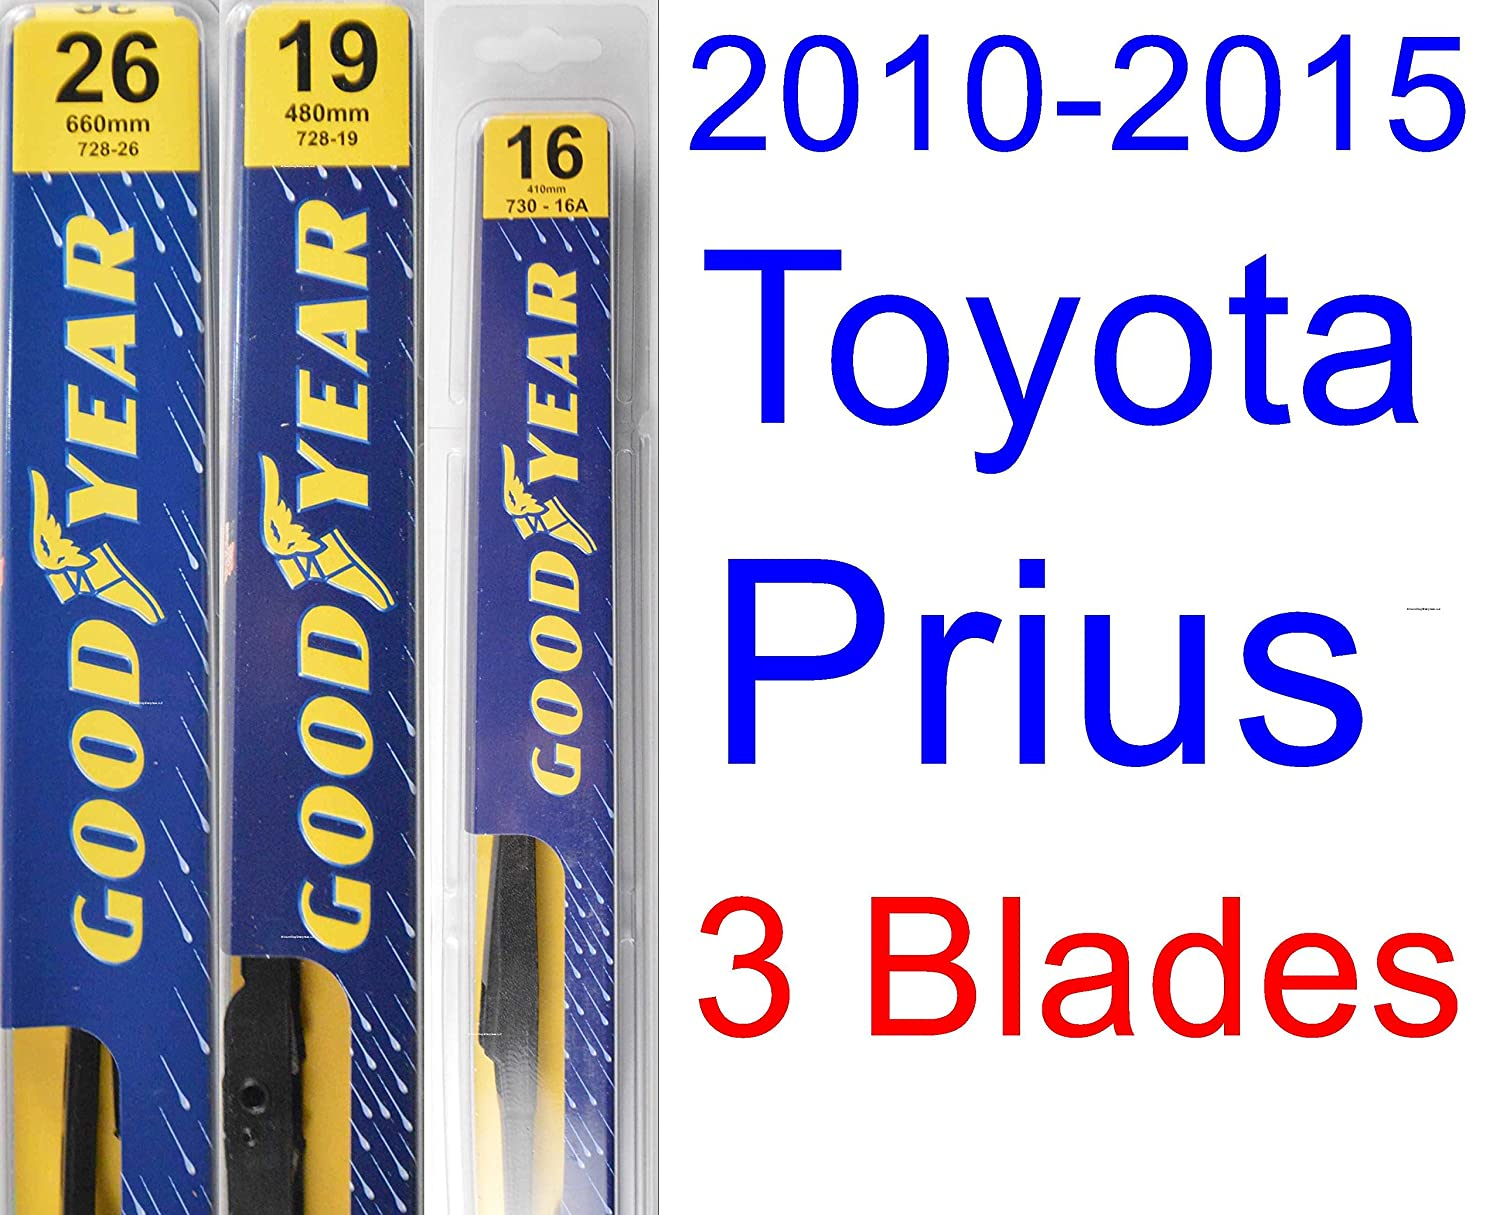 Wiring Diagram 2015 Prius Wipers 32 Images Toyota Sl1500 Amazon Com 2010 Replacement Wiper Blade Set Kit Electrical